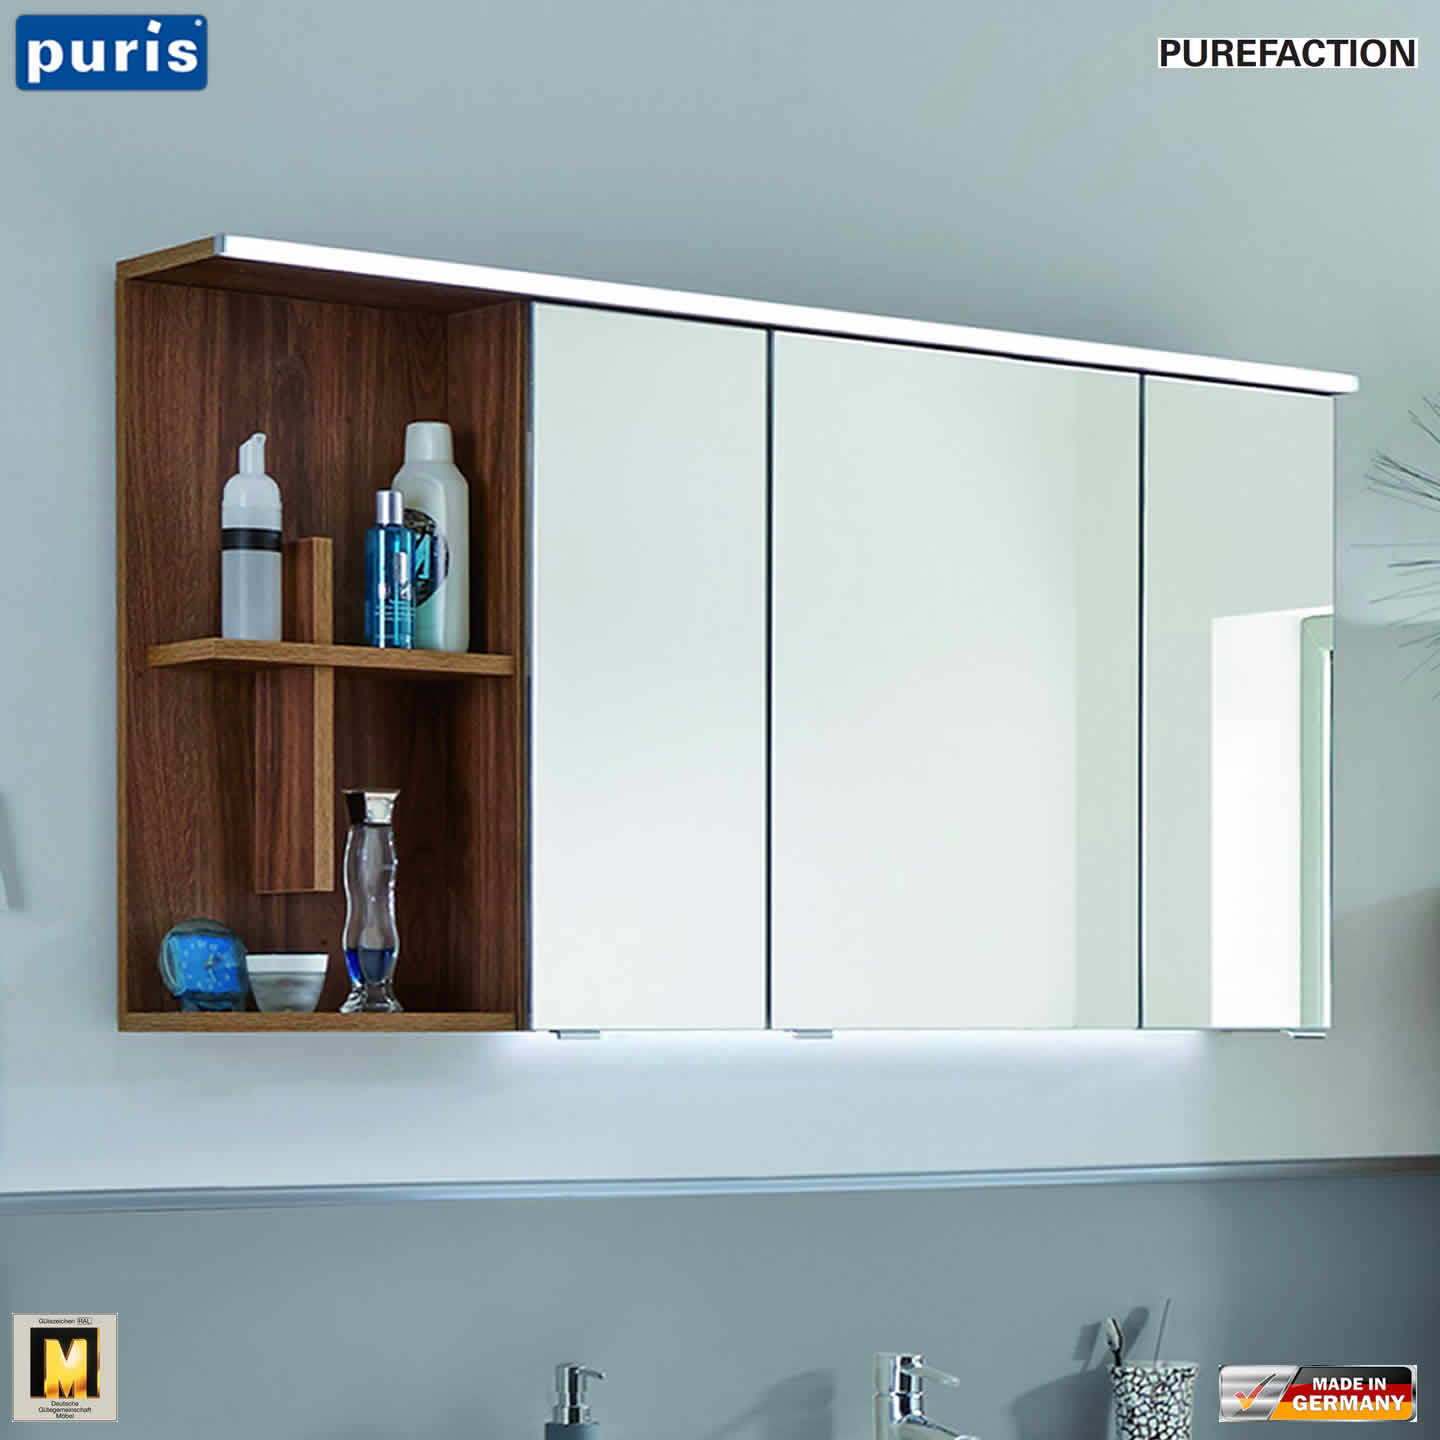 Badezimmer Spiegelschrank Mit Regal Puris Purefaction Led Spiegelschrank 120 Cm Regal Mit Kreuz Links